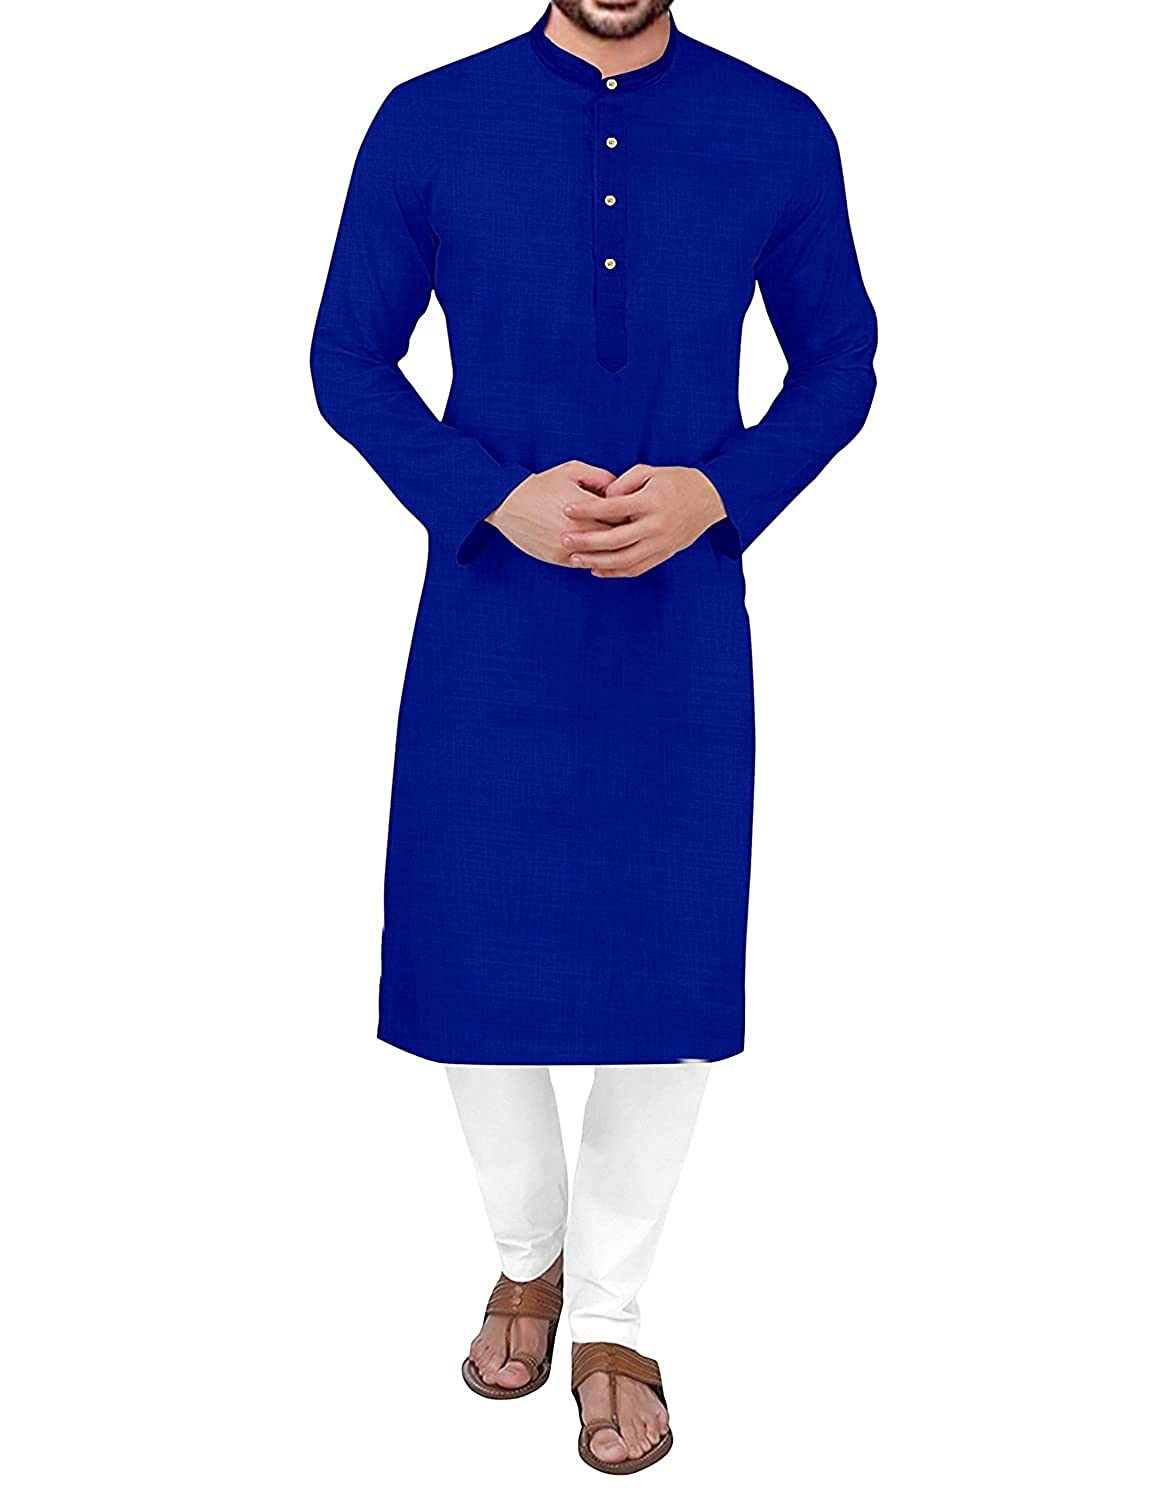 Men's Solid Straight Kurta & Pyjana (Plain) Colours: Baby Pink, Lemon Yellow, Dark Red, Peach , Nevi Blue, Orange, Turmeric Yellow, Dark Pink (38)